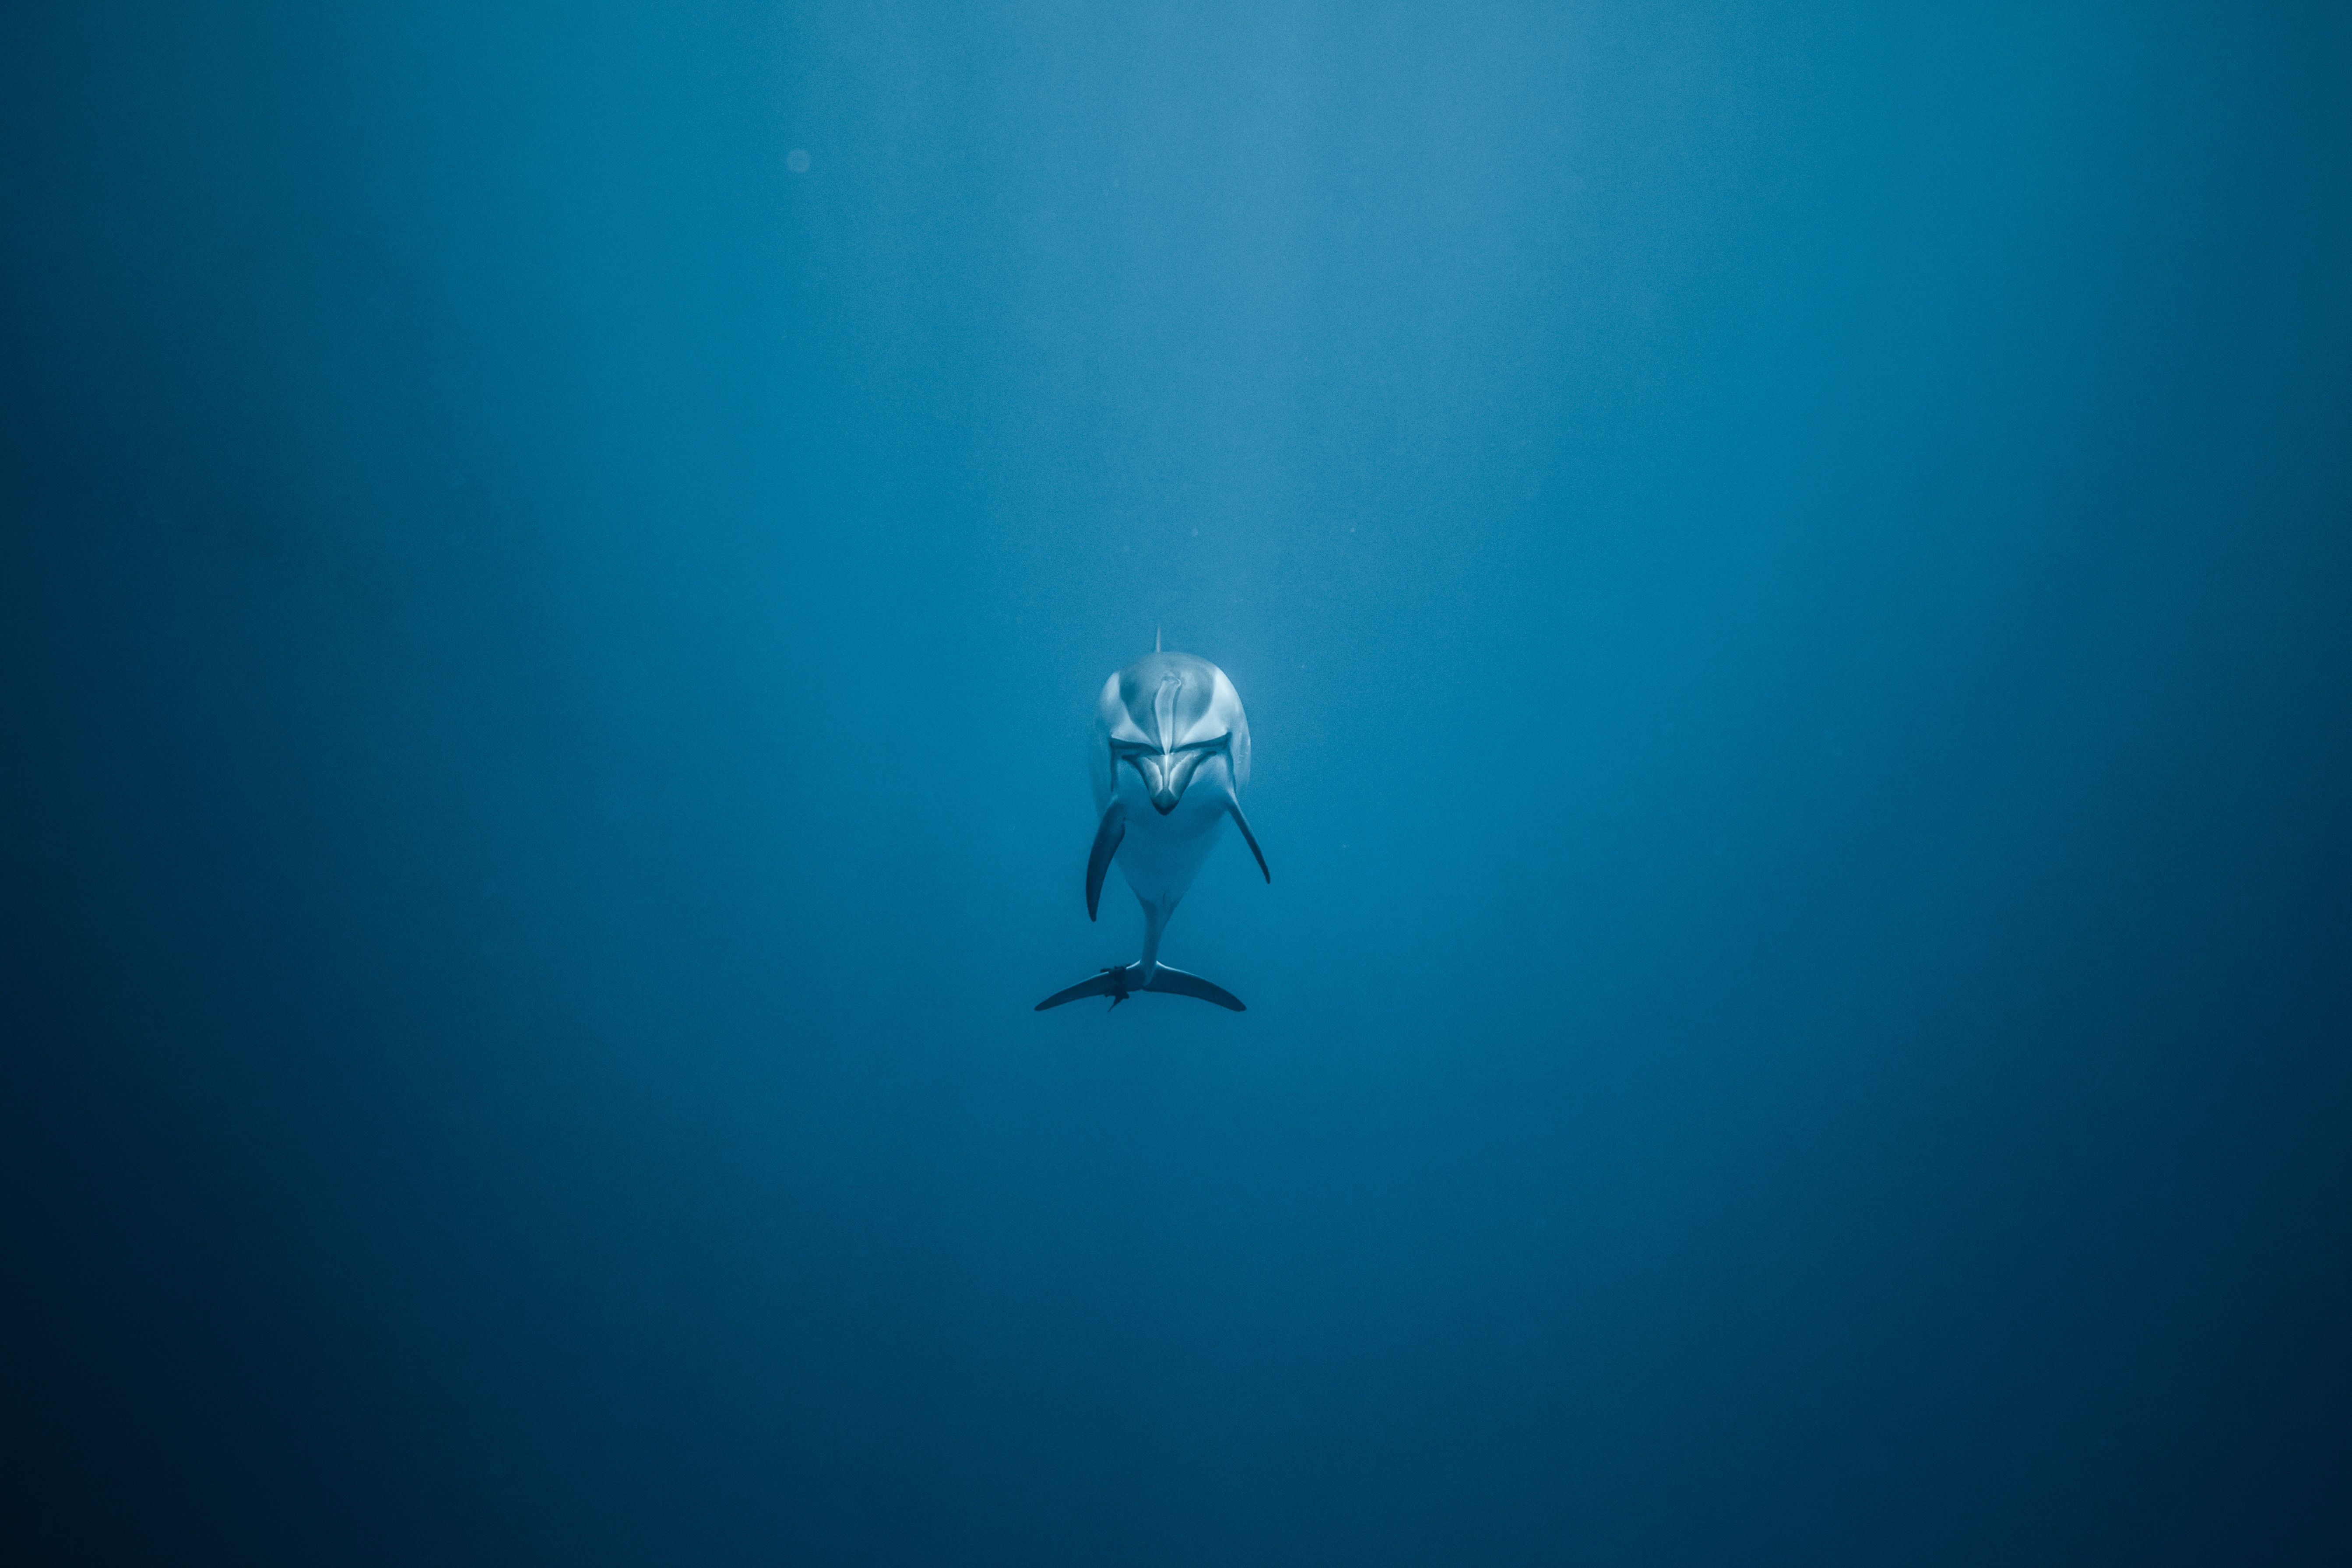 56101 download wallpaper Animals, Dolphin, Underwater World, To Swim, Swim, Alone, Lonely screensavers and pictures for free